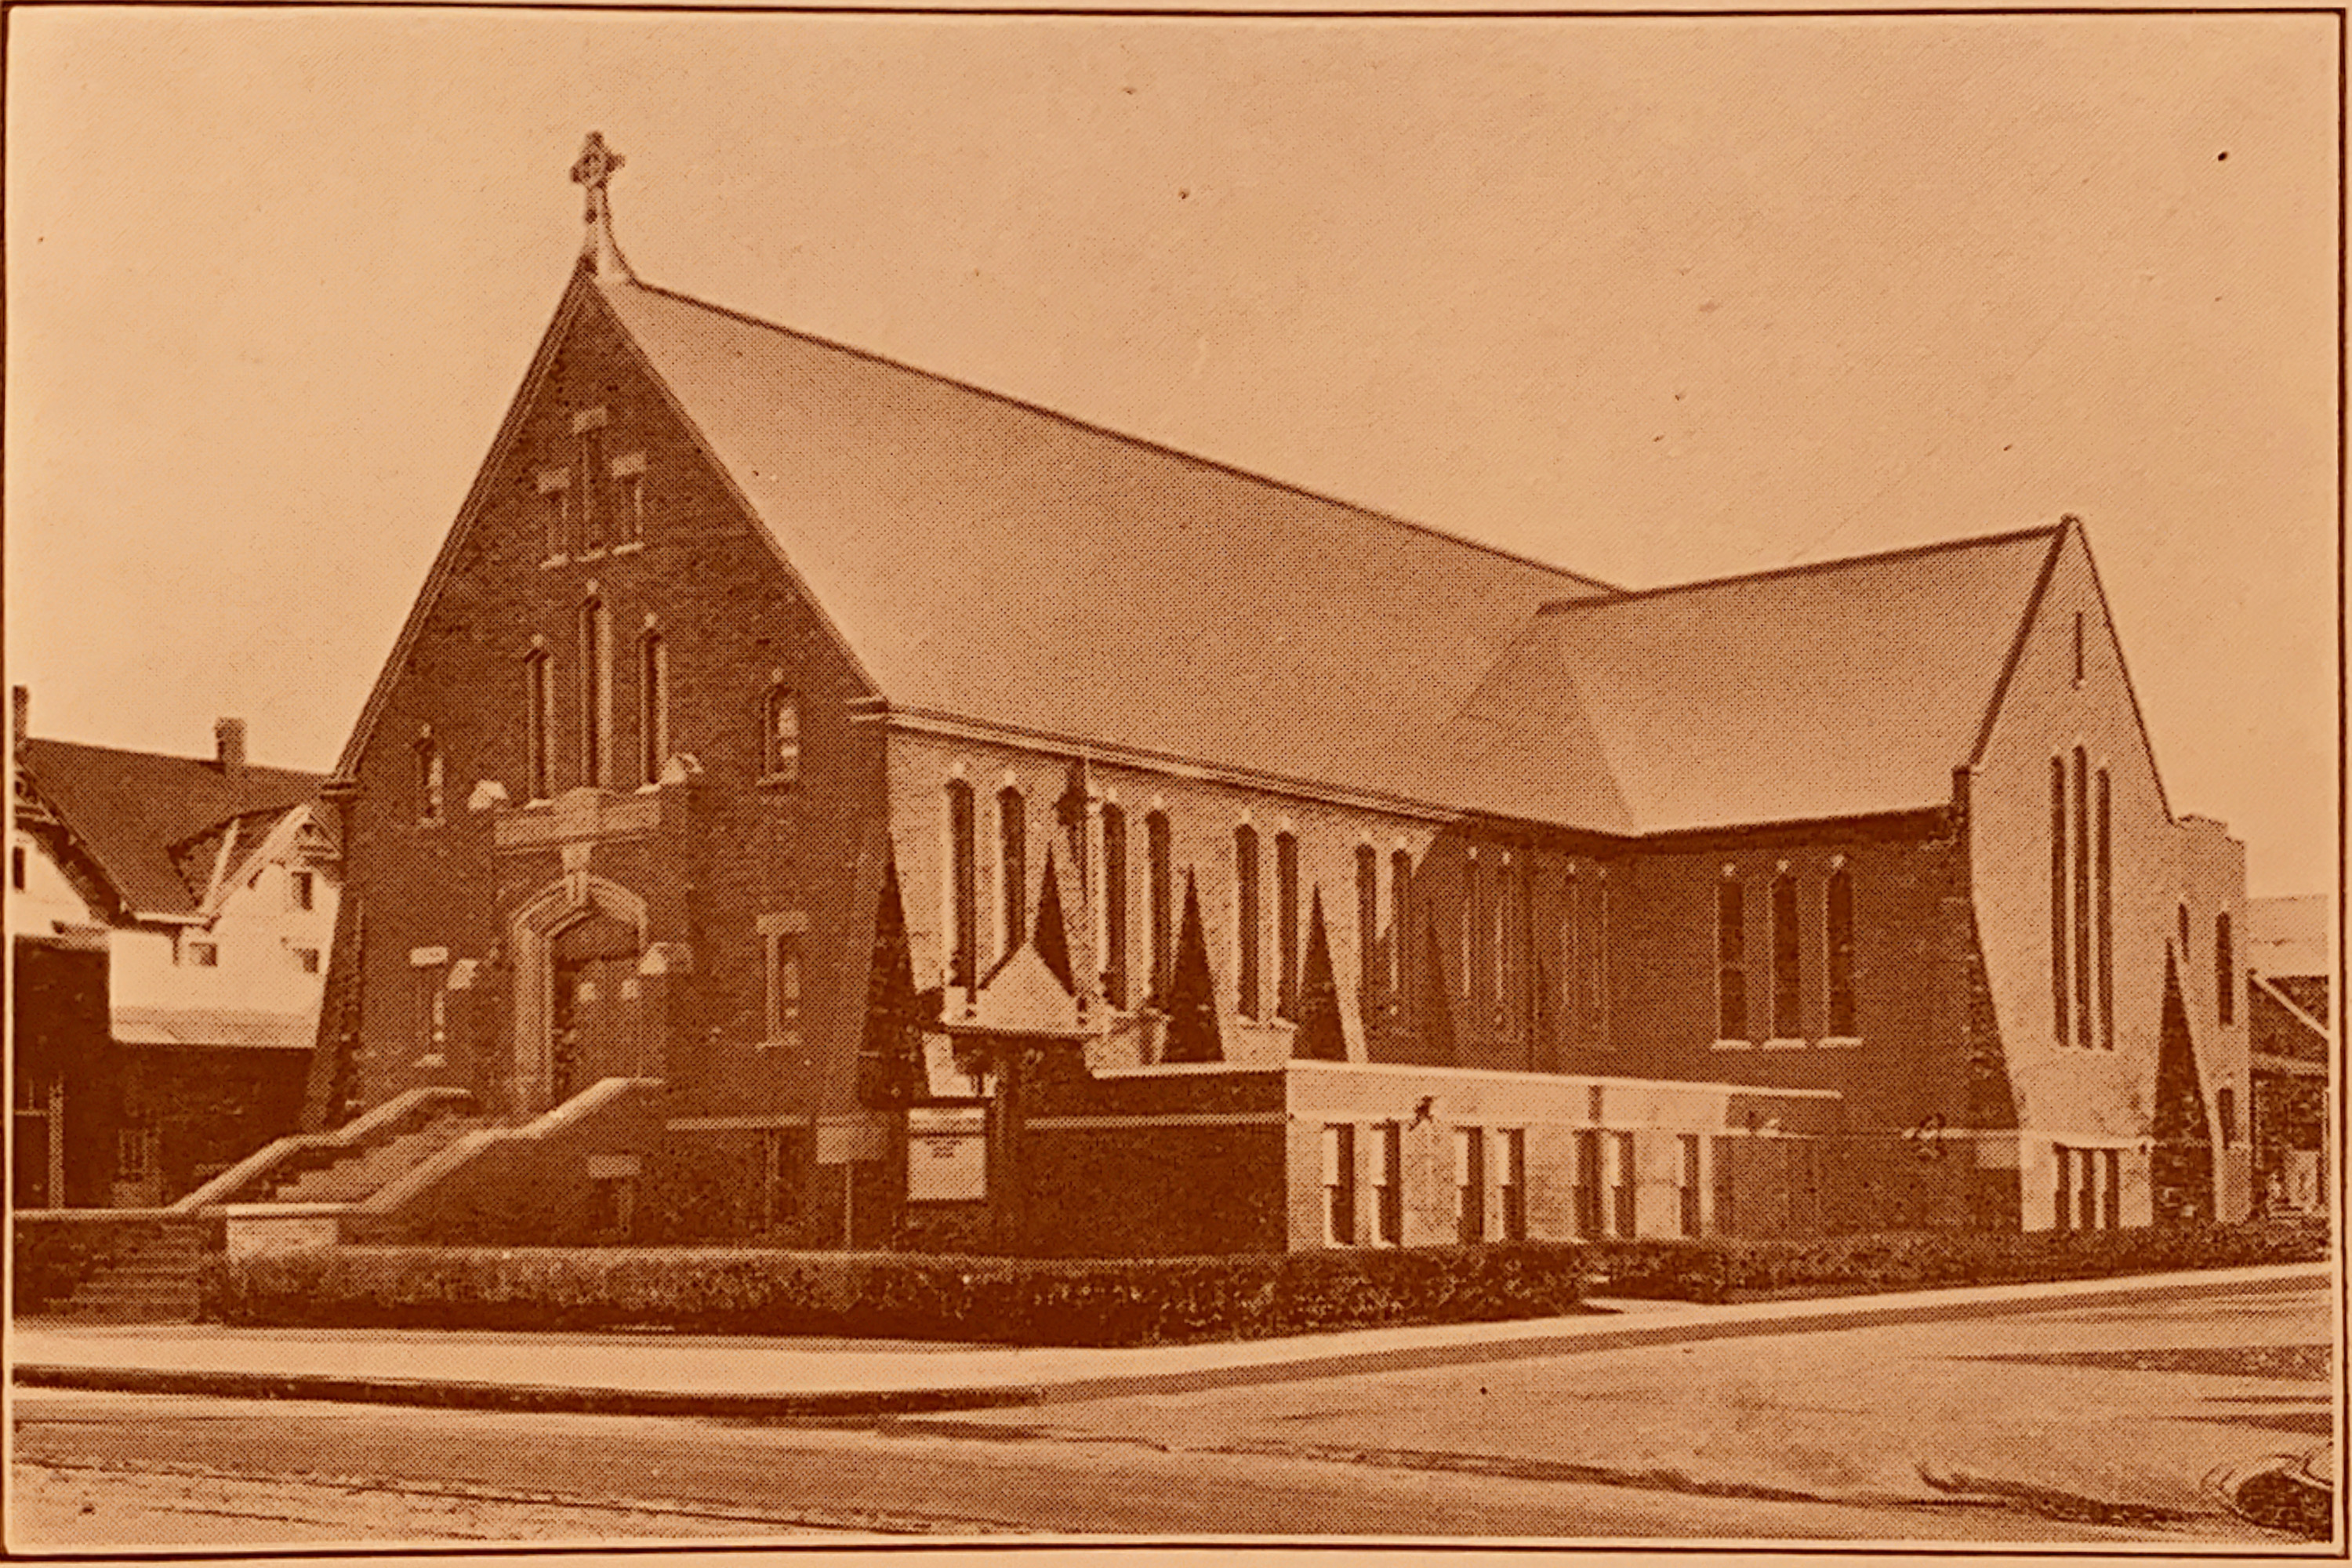 The contemporary structure of St. Mark's Lutheran church as it debuted in 1927. The 1,300 person capacity building forms the shape of a cruciform when seen from above.